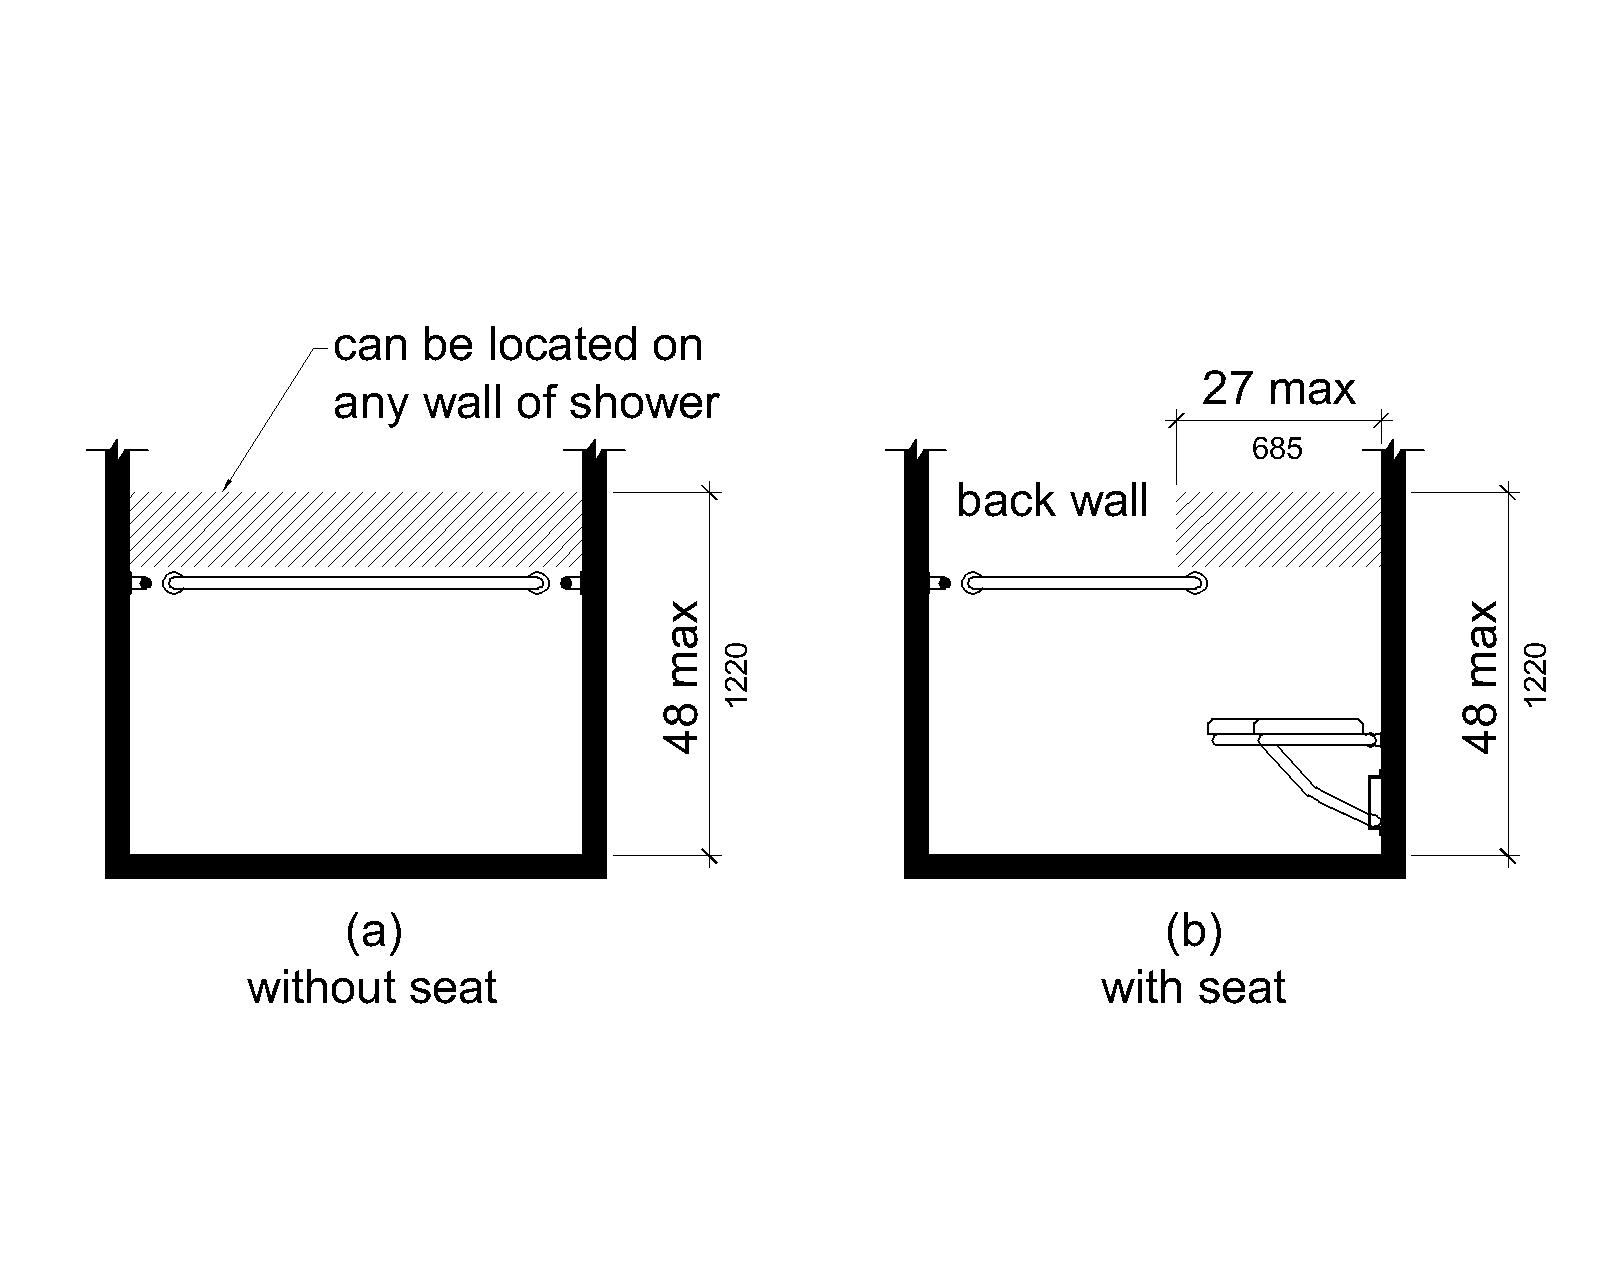 Figure (a) is an elevation drawing of a compartment without a seat. The area for controls, faucets and shower spray units is located on any wall of the shower above the grab bar but no higher than 48 inches (1220 mm) above the shower deck surface. Figure (b) is an elevation drawing of a compartment with a seat. The area for controls, faucets and shower spray units is located on the back wall 27 inches (685 mm) from the seat wall and above the grab bar, but no higher than 48 inches (1220 mm) above the shower deck surface.